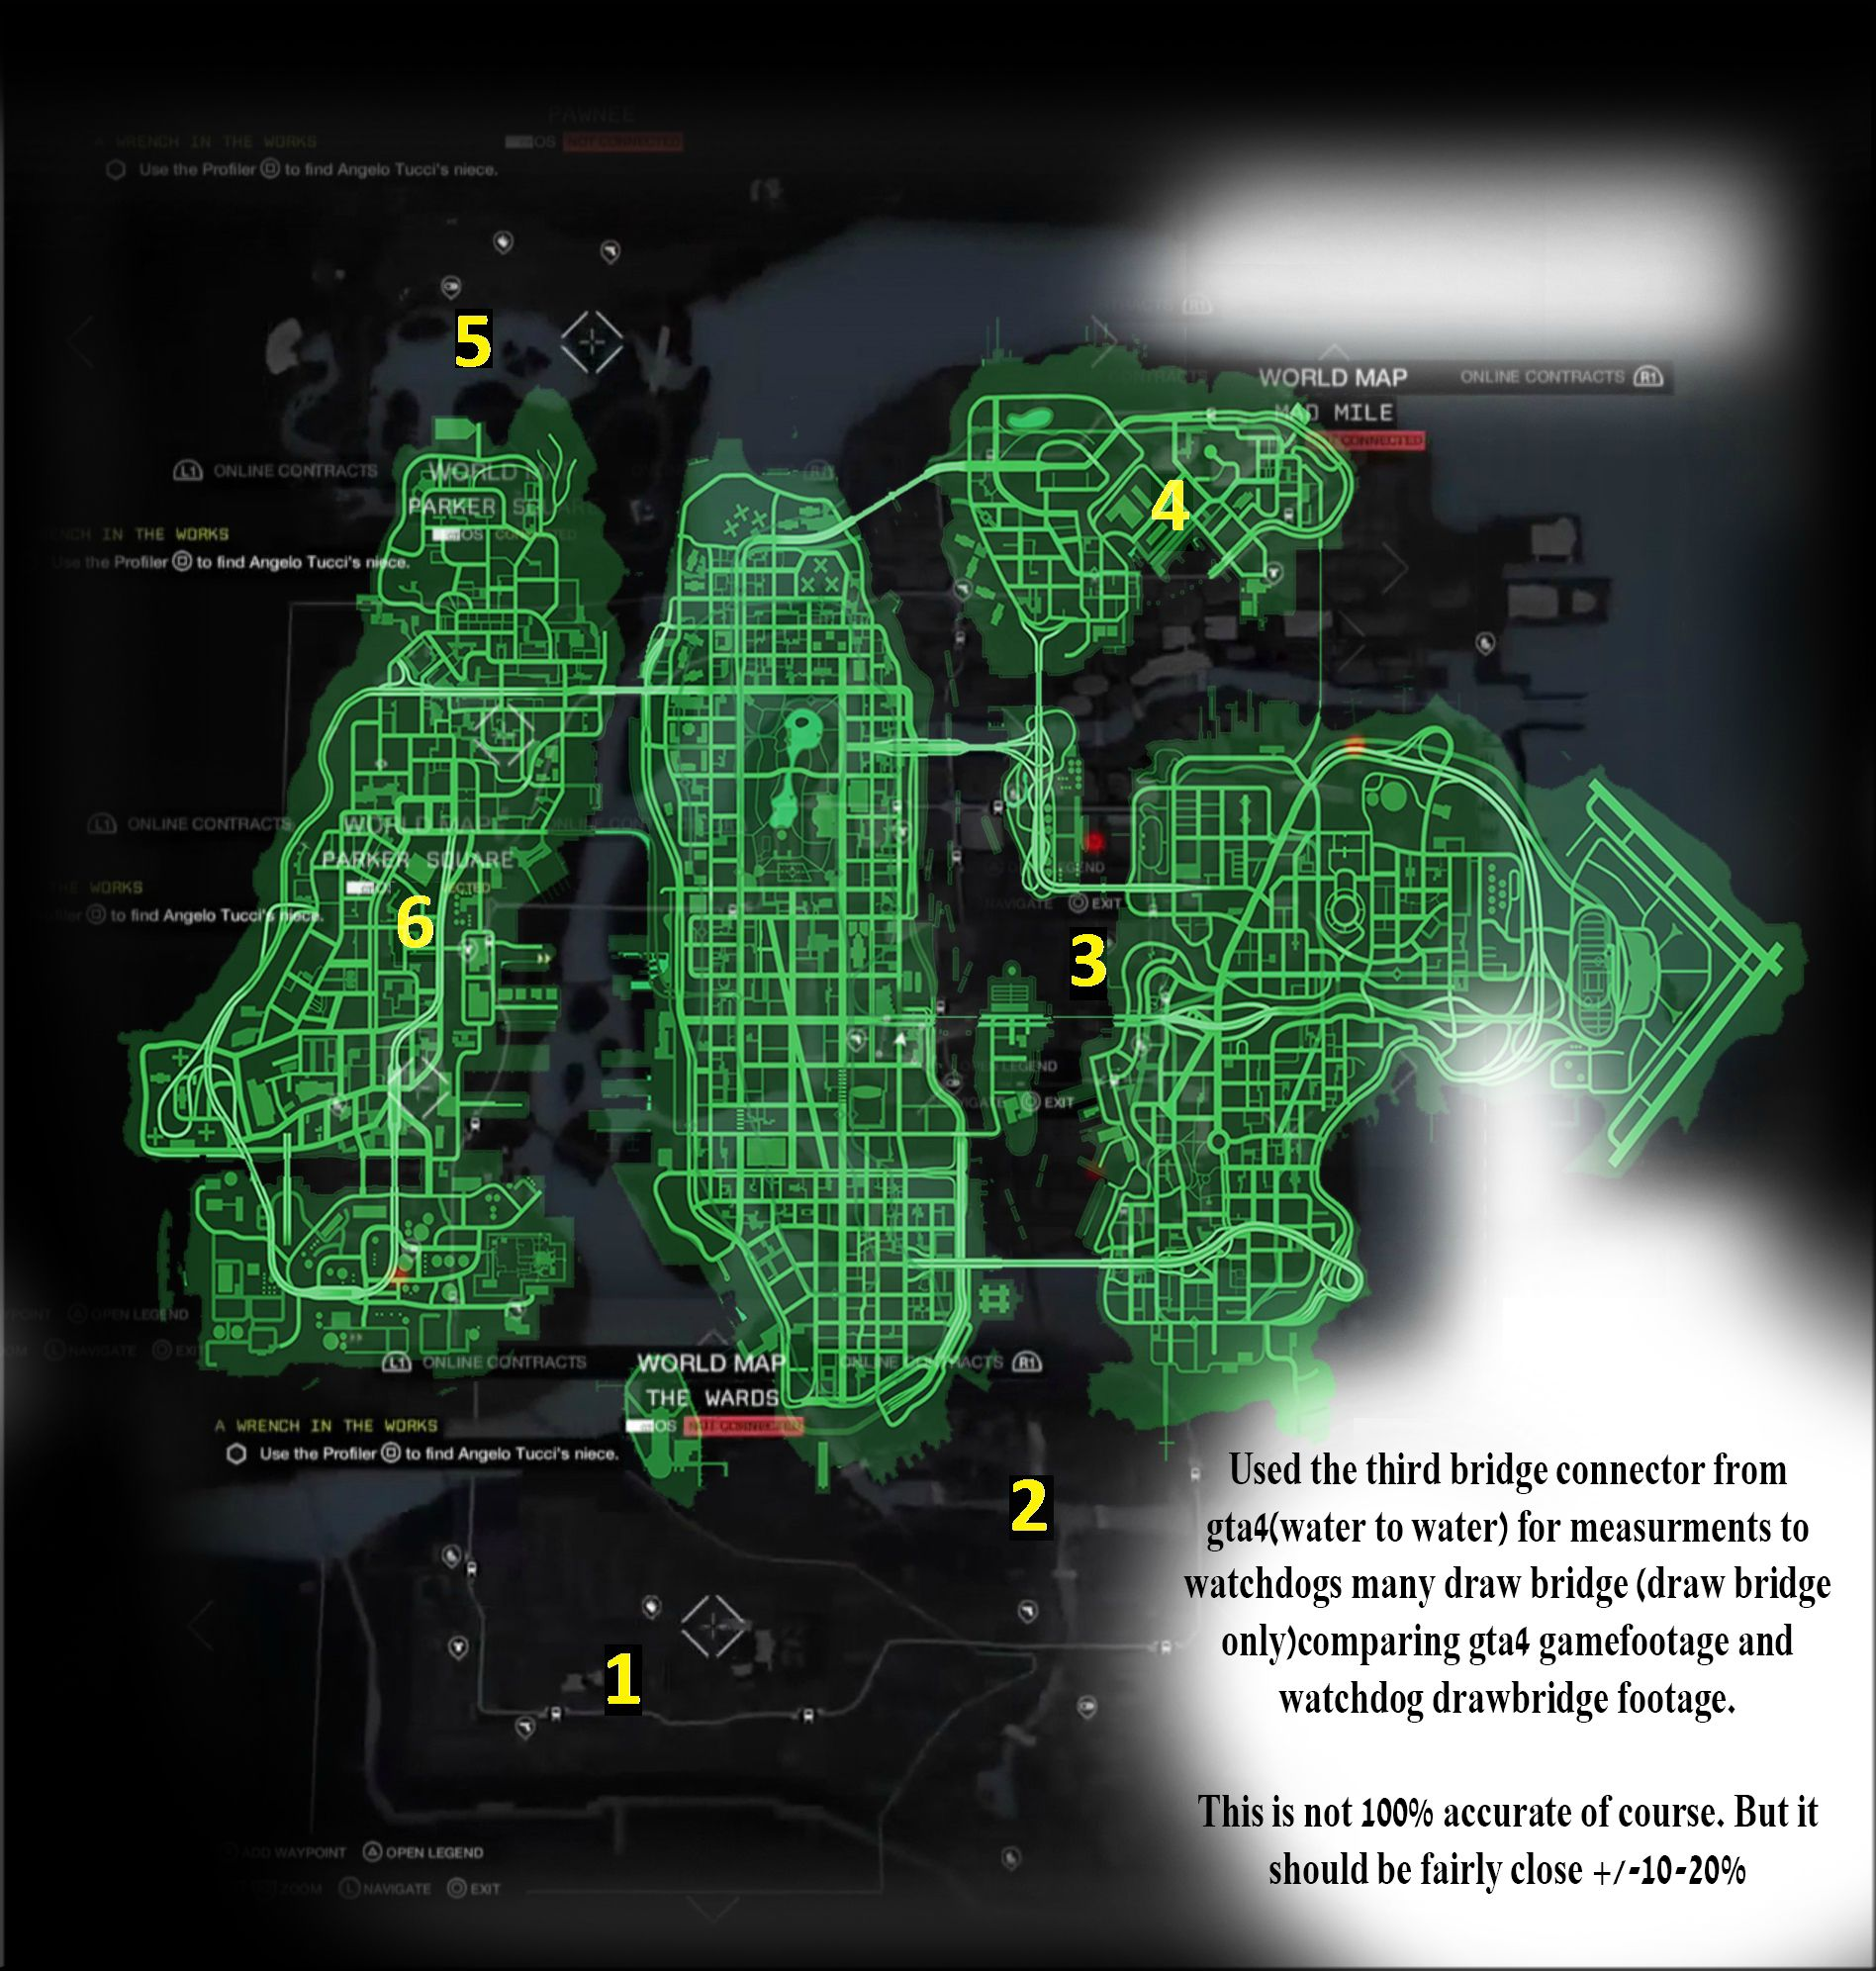 Watch dogs map leaked here is the gta 4 map green placed over the watch dogs map gumiabroncs Choice Image